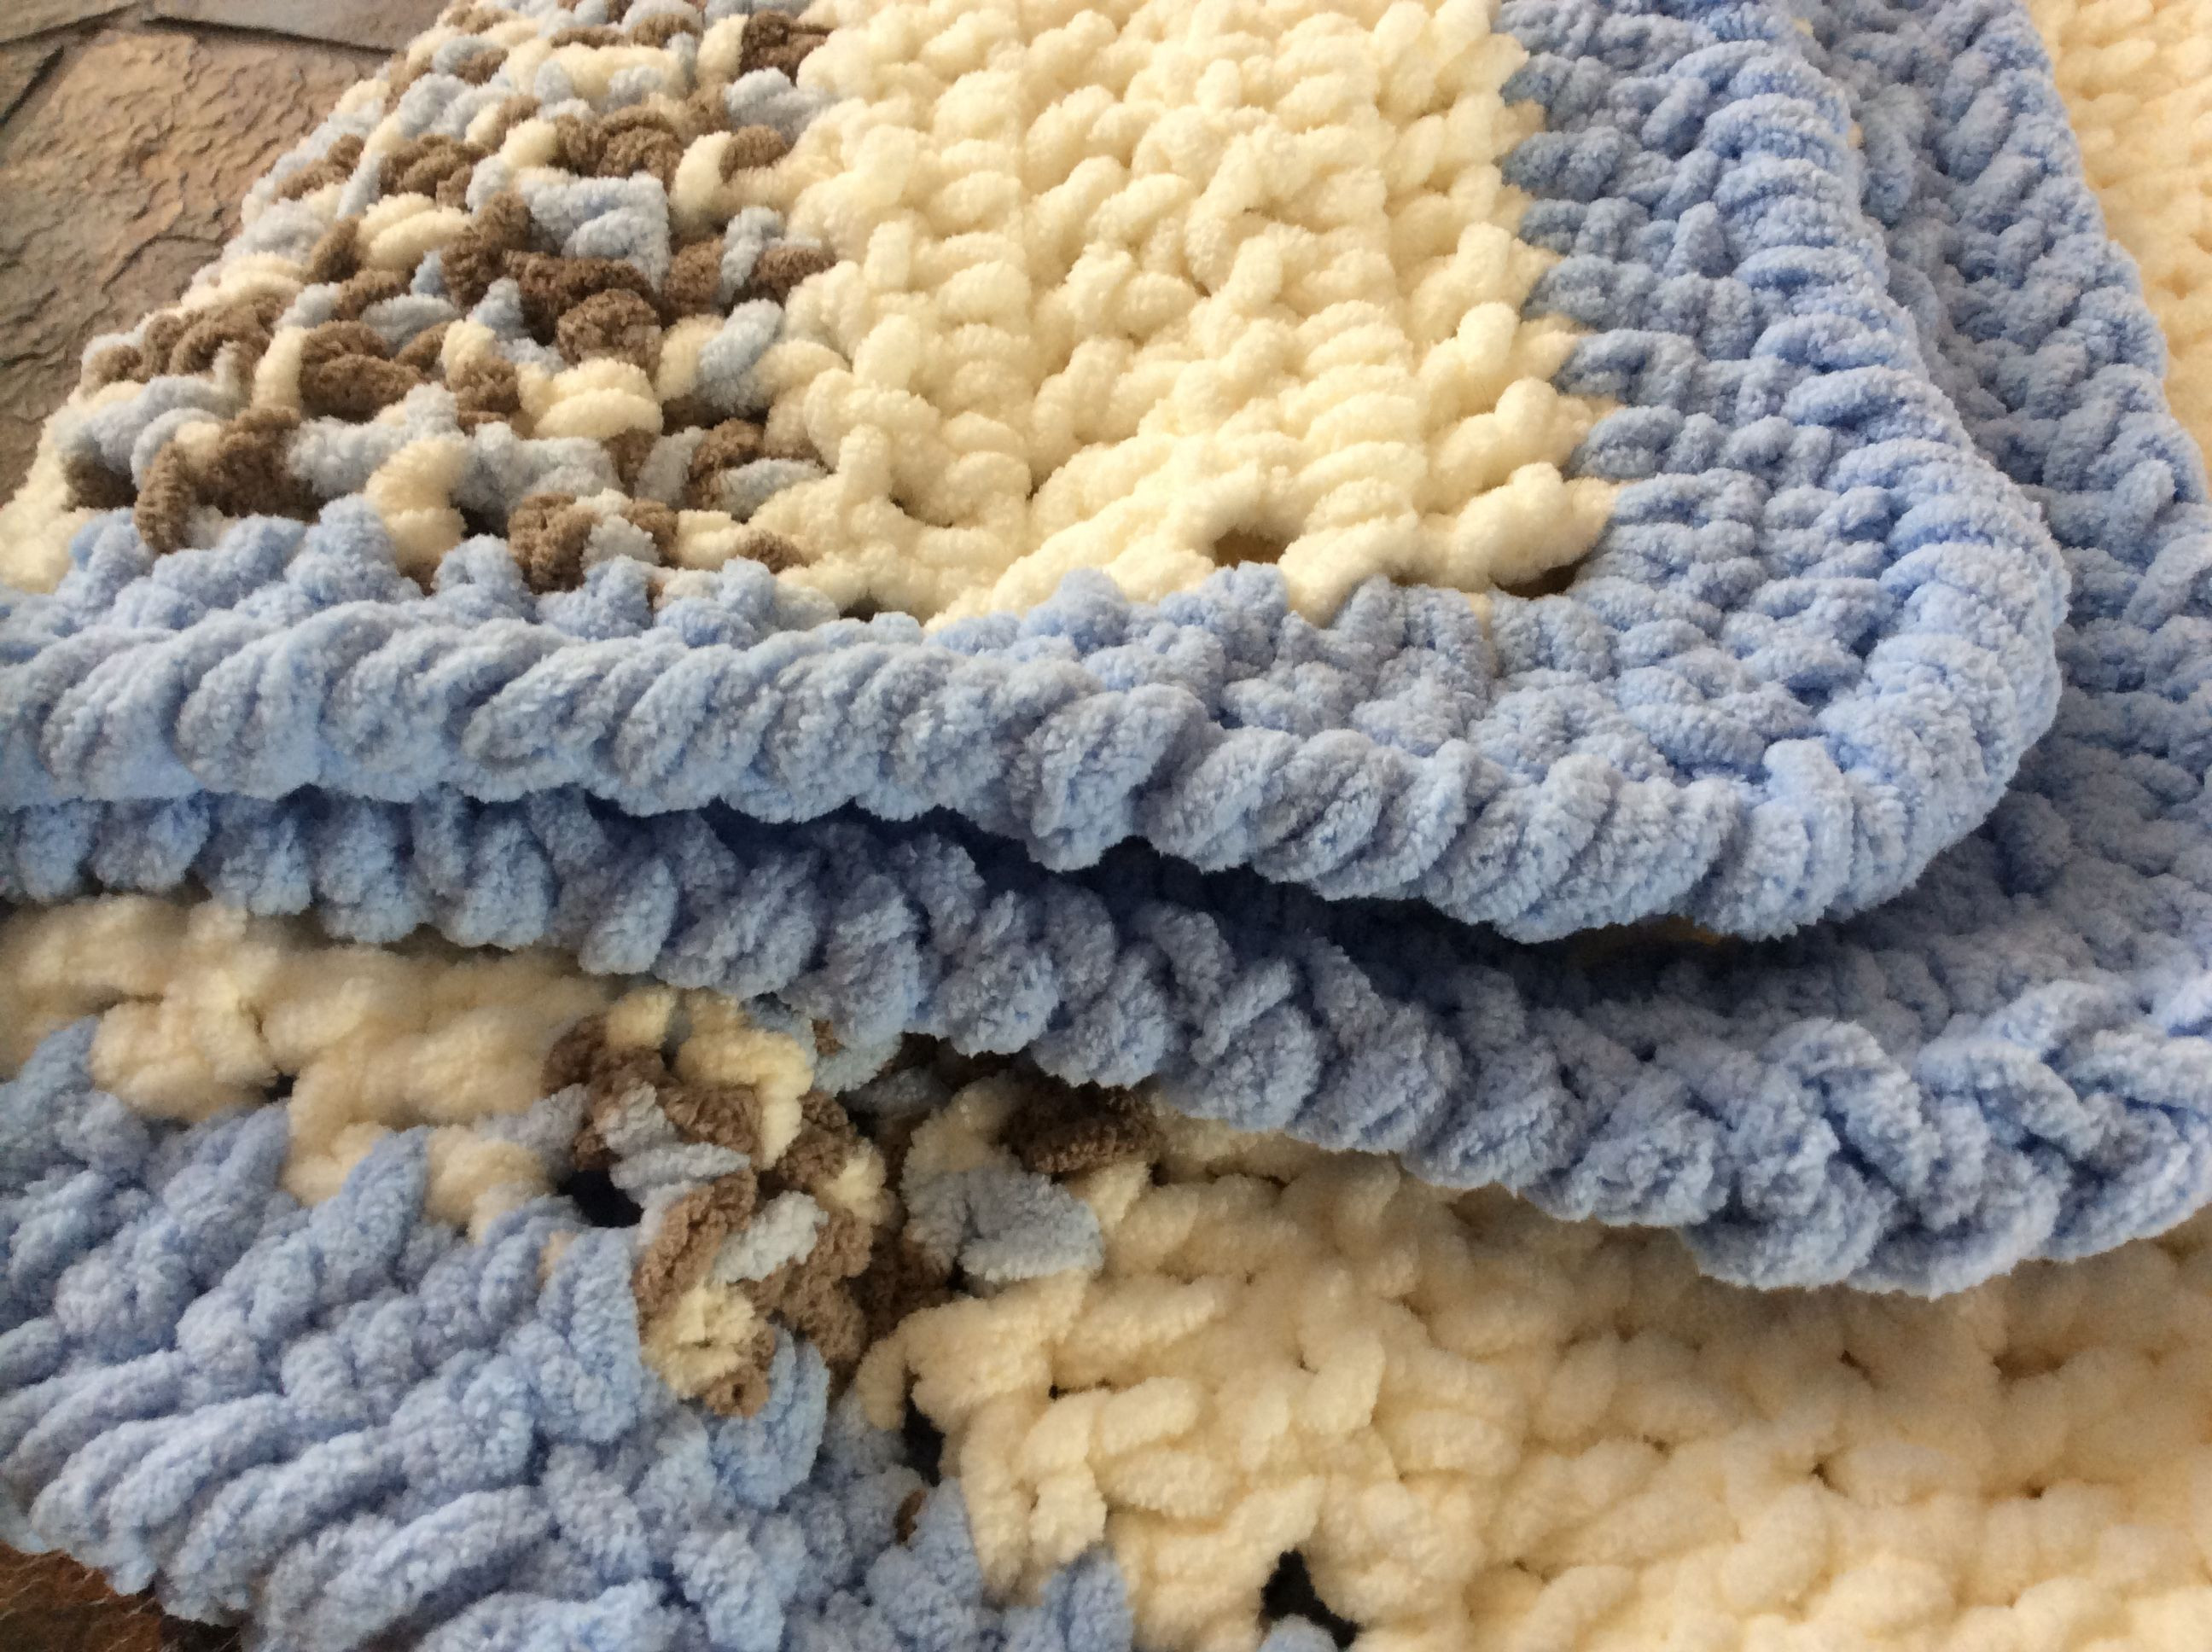 Best Of Crochet Blanket My son Wanted A Very Cosy Blanket Used Crochet Patterns Using Bernat Baby Blanket Yarn Of Superb 47 Models Crochet Patterns Using Bernat Baby Blanket Yarn